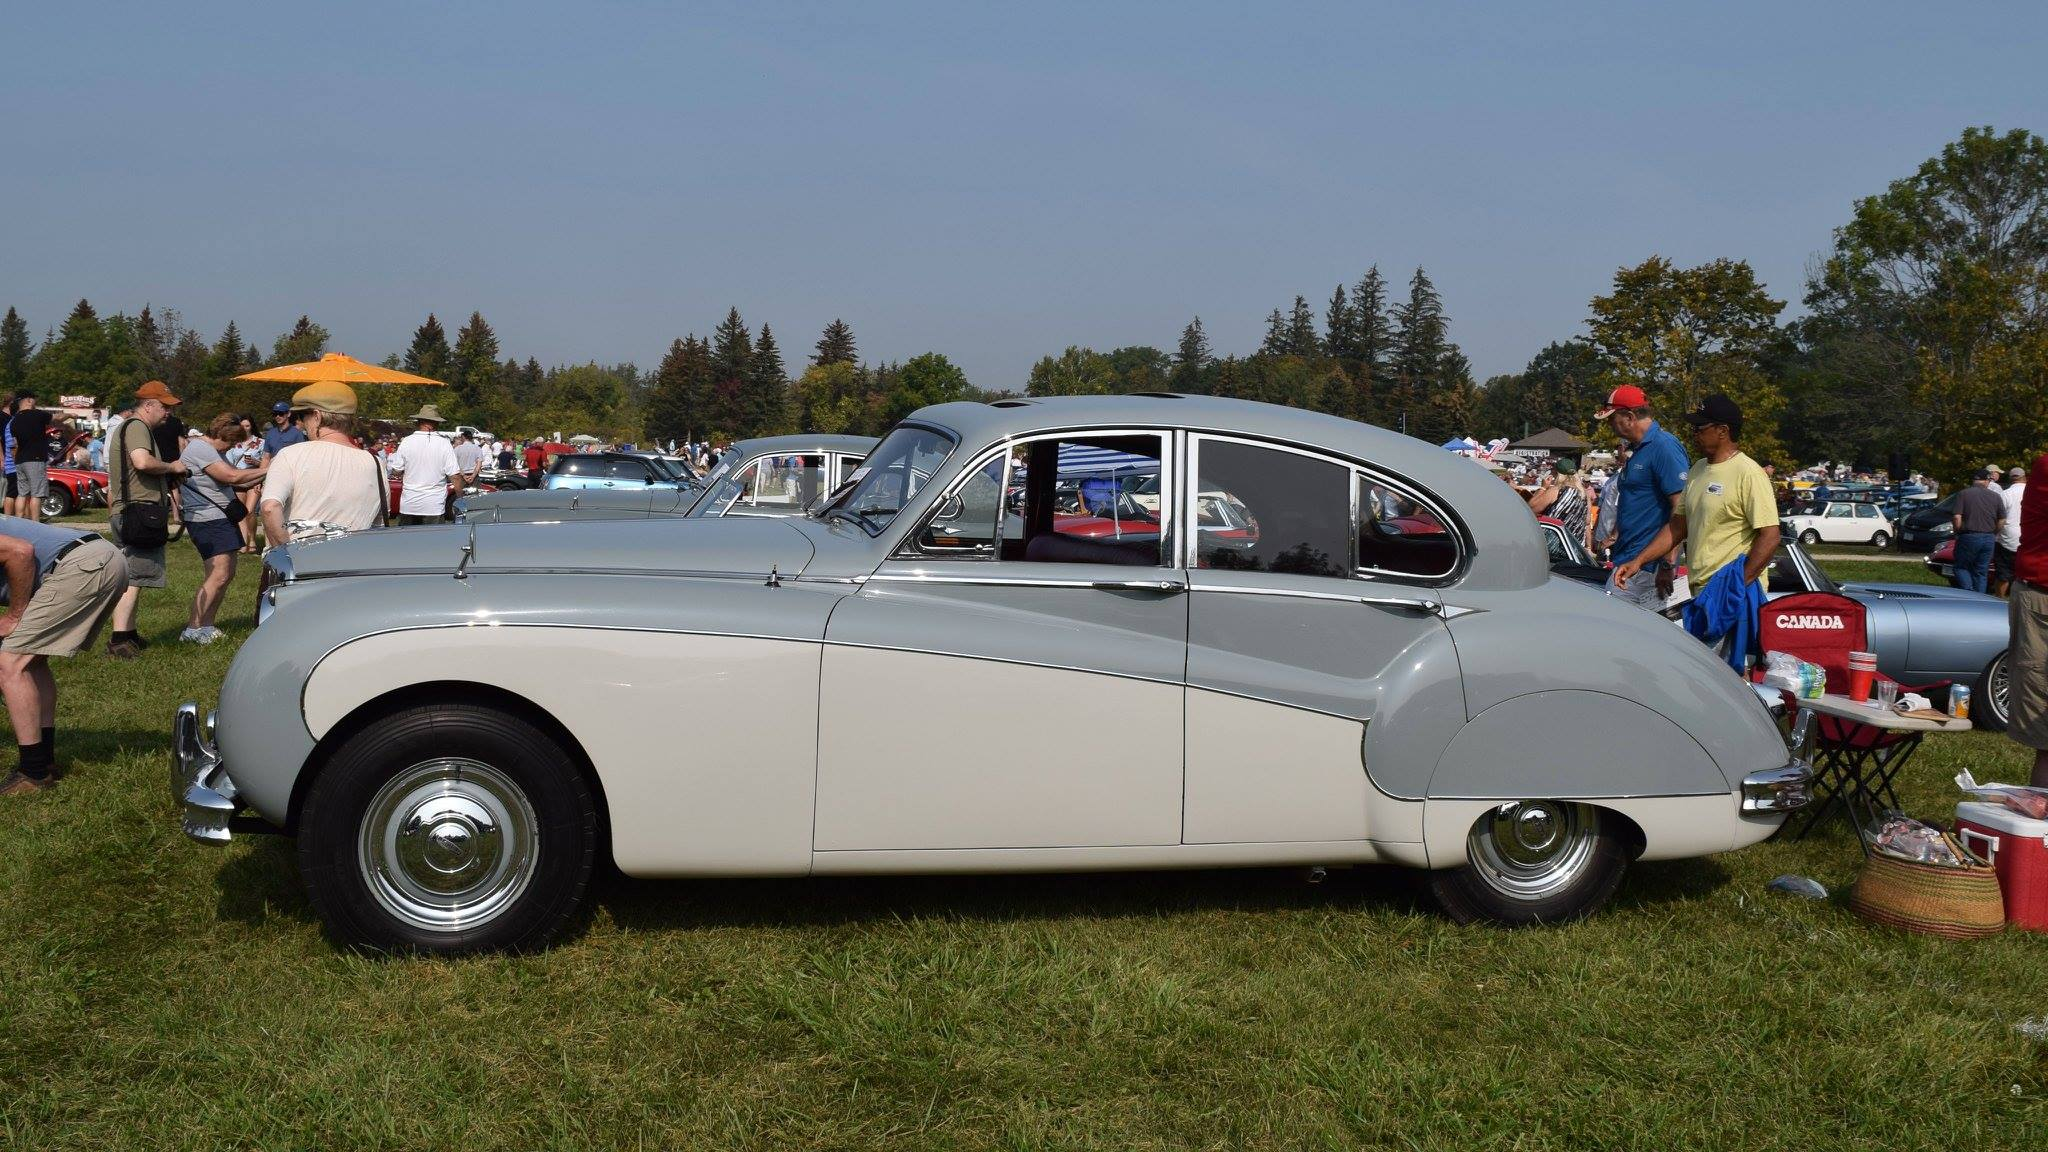 20170917-bcd-1960 Jaguar Mark IX